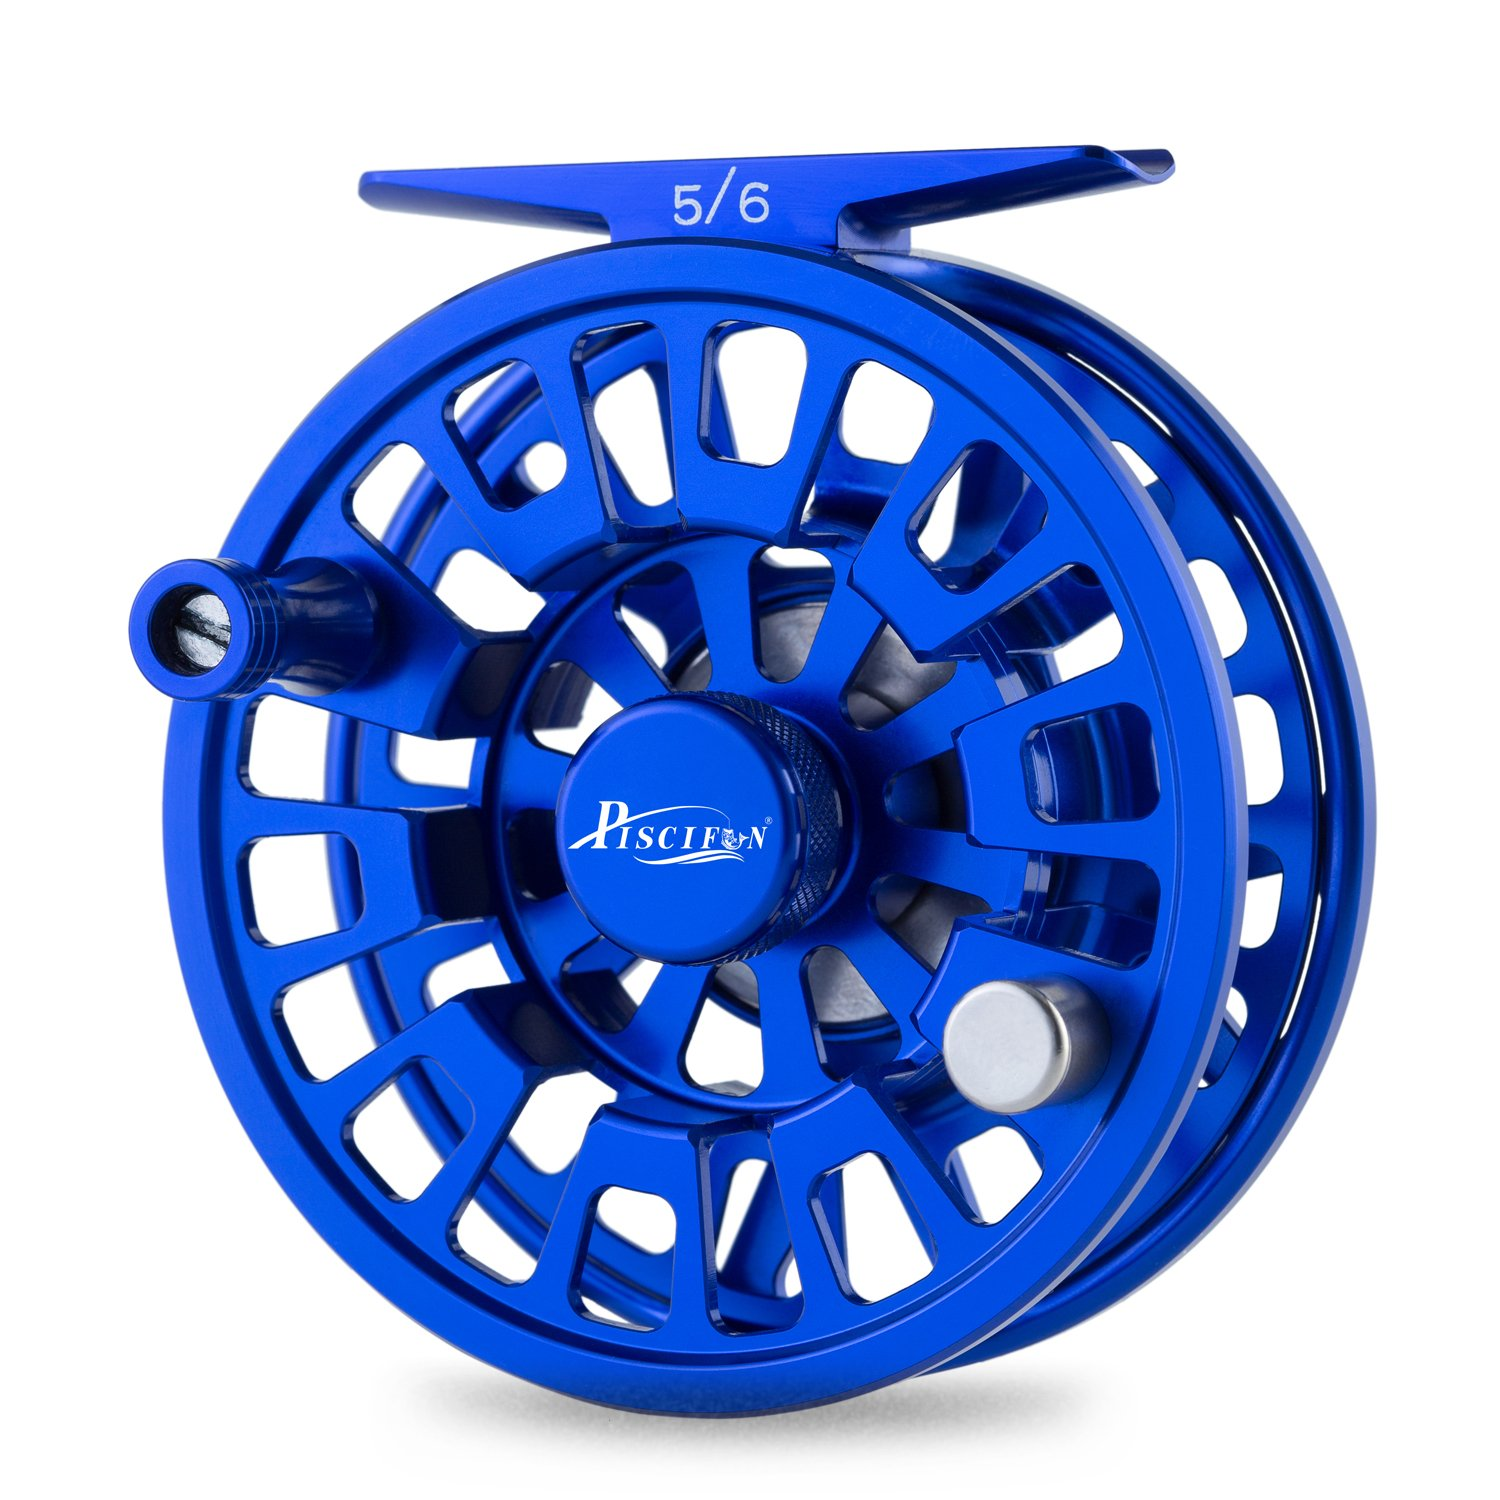 Piscifun Blaze Fly Fishing Reel with CNC-machined Aluminum Alloy Body 3/4, 5/6, 7/8, 9/10(Gold, Brown, Sapphire Blue)